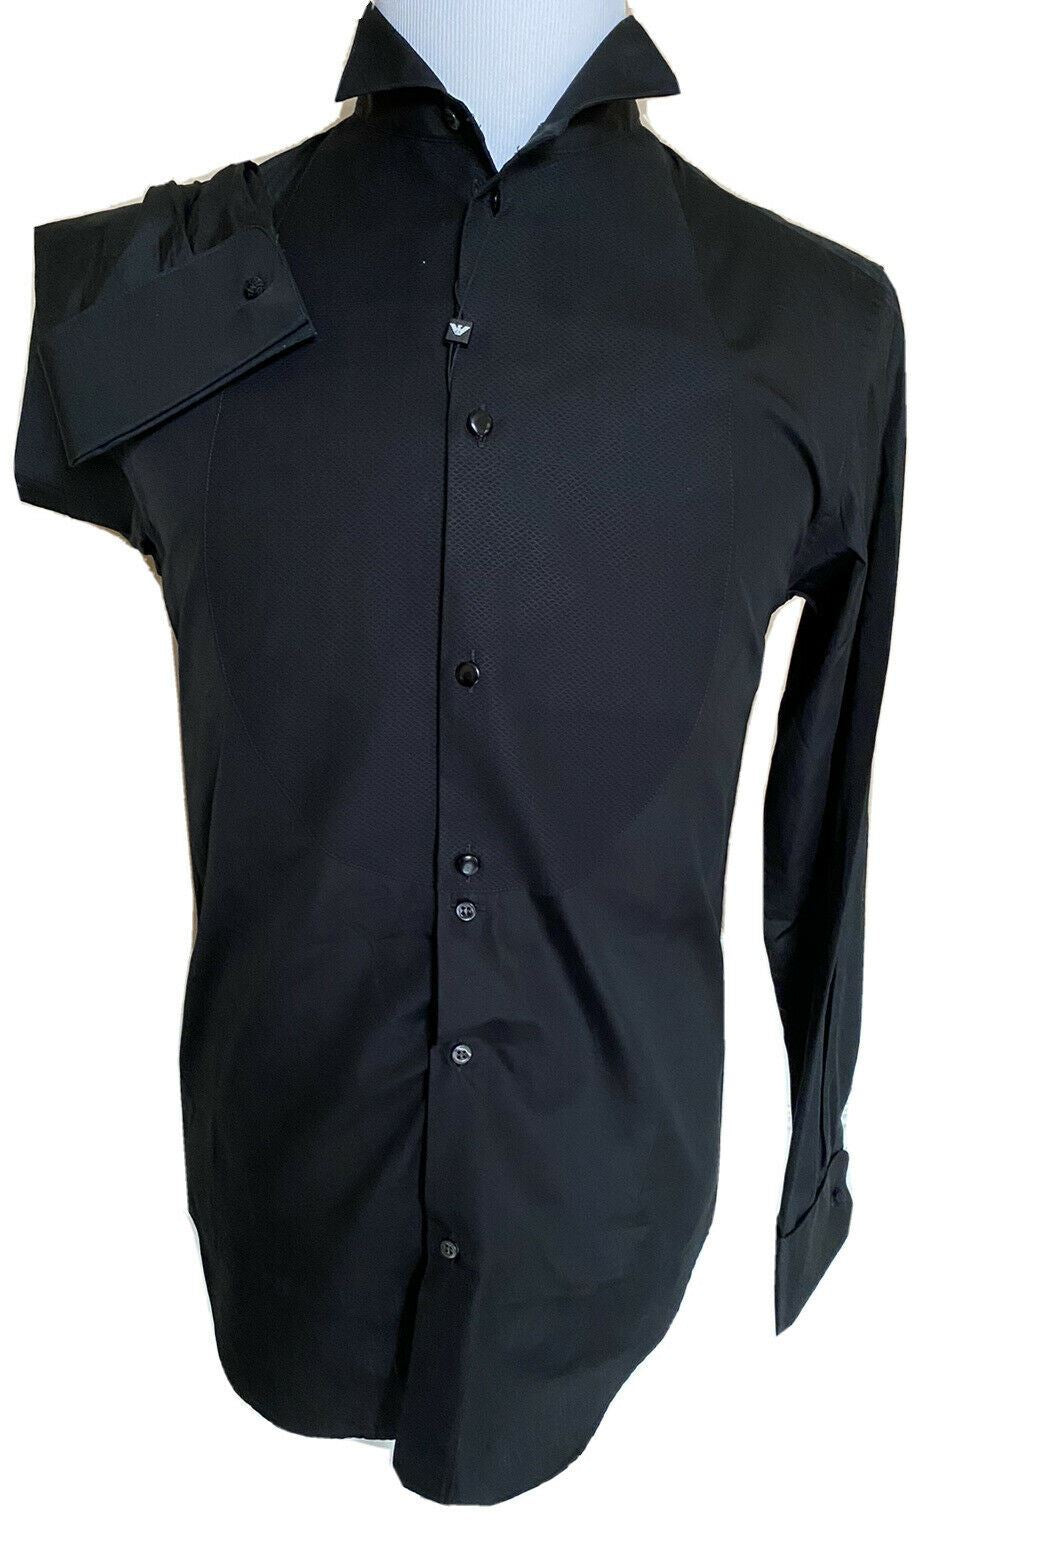 NWT $525 Emporio Armani Korean-Necked Black Dress Shirt  Size 40/15.75 11CS3T